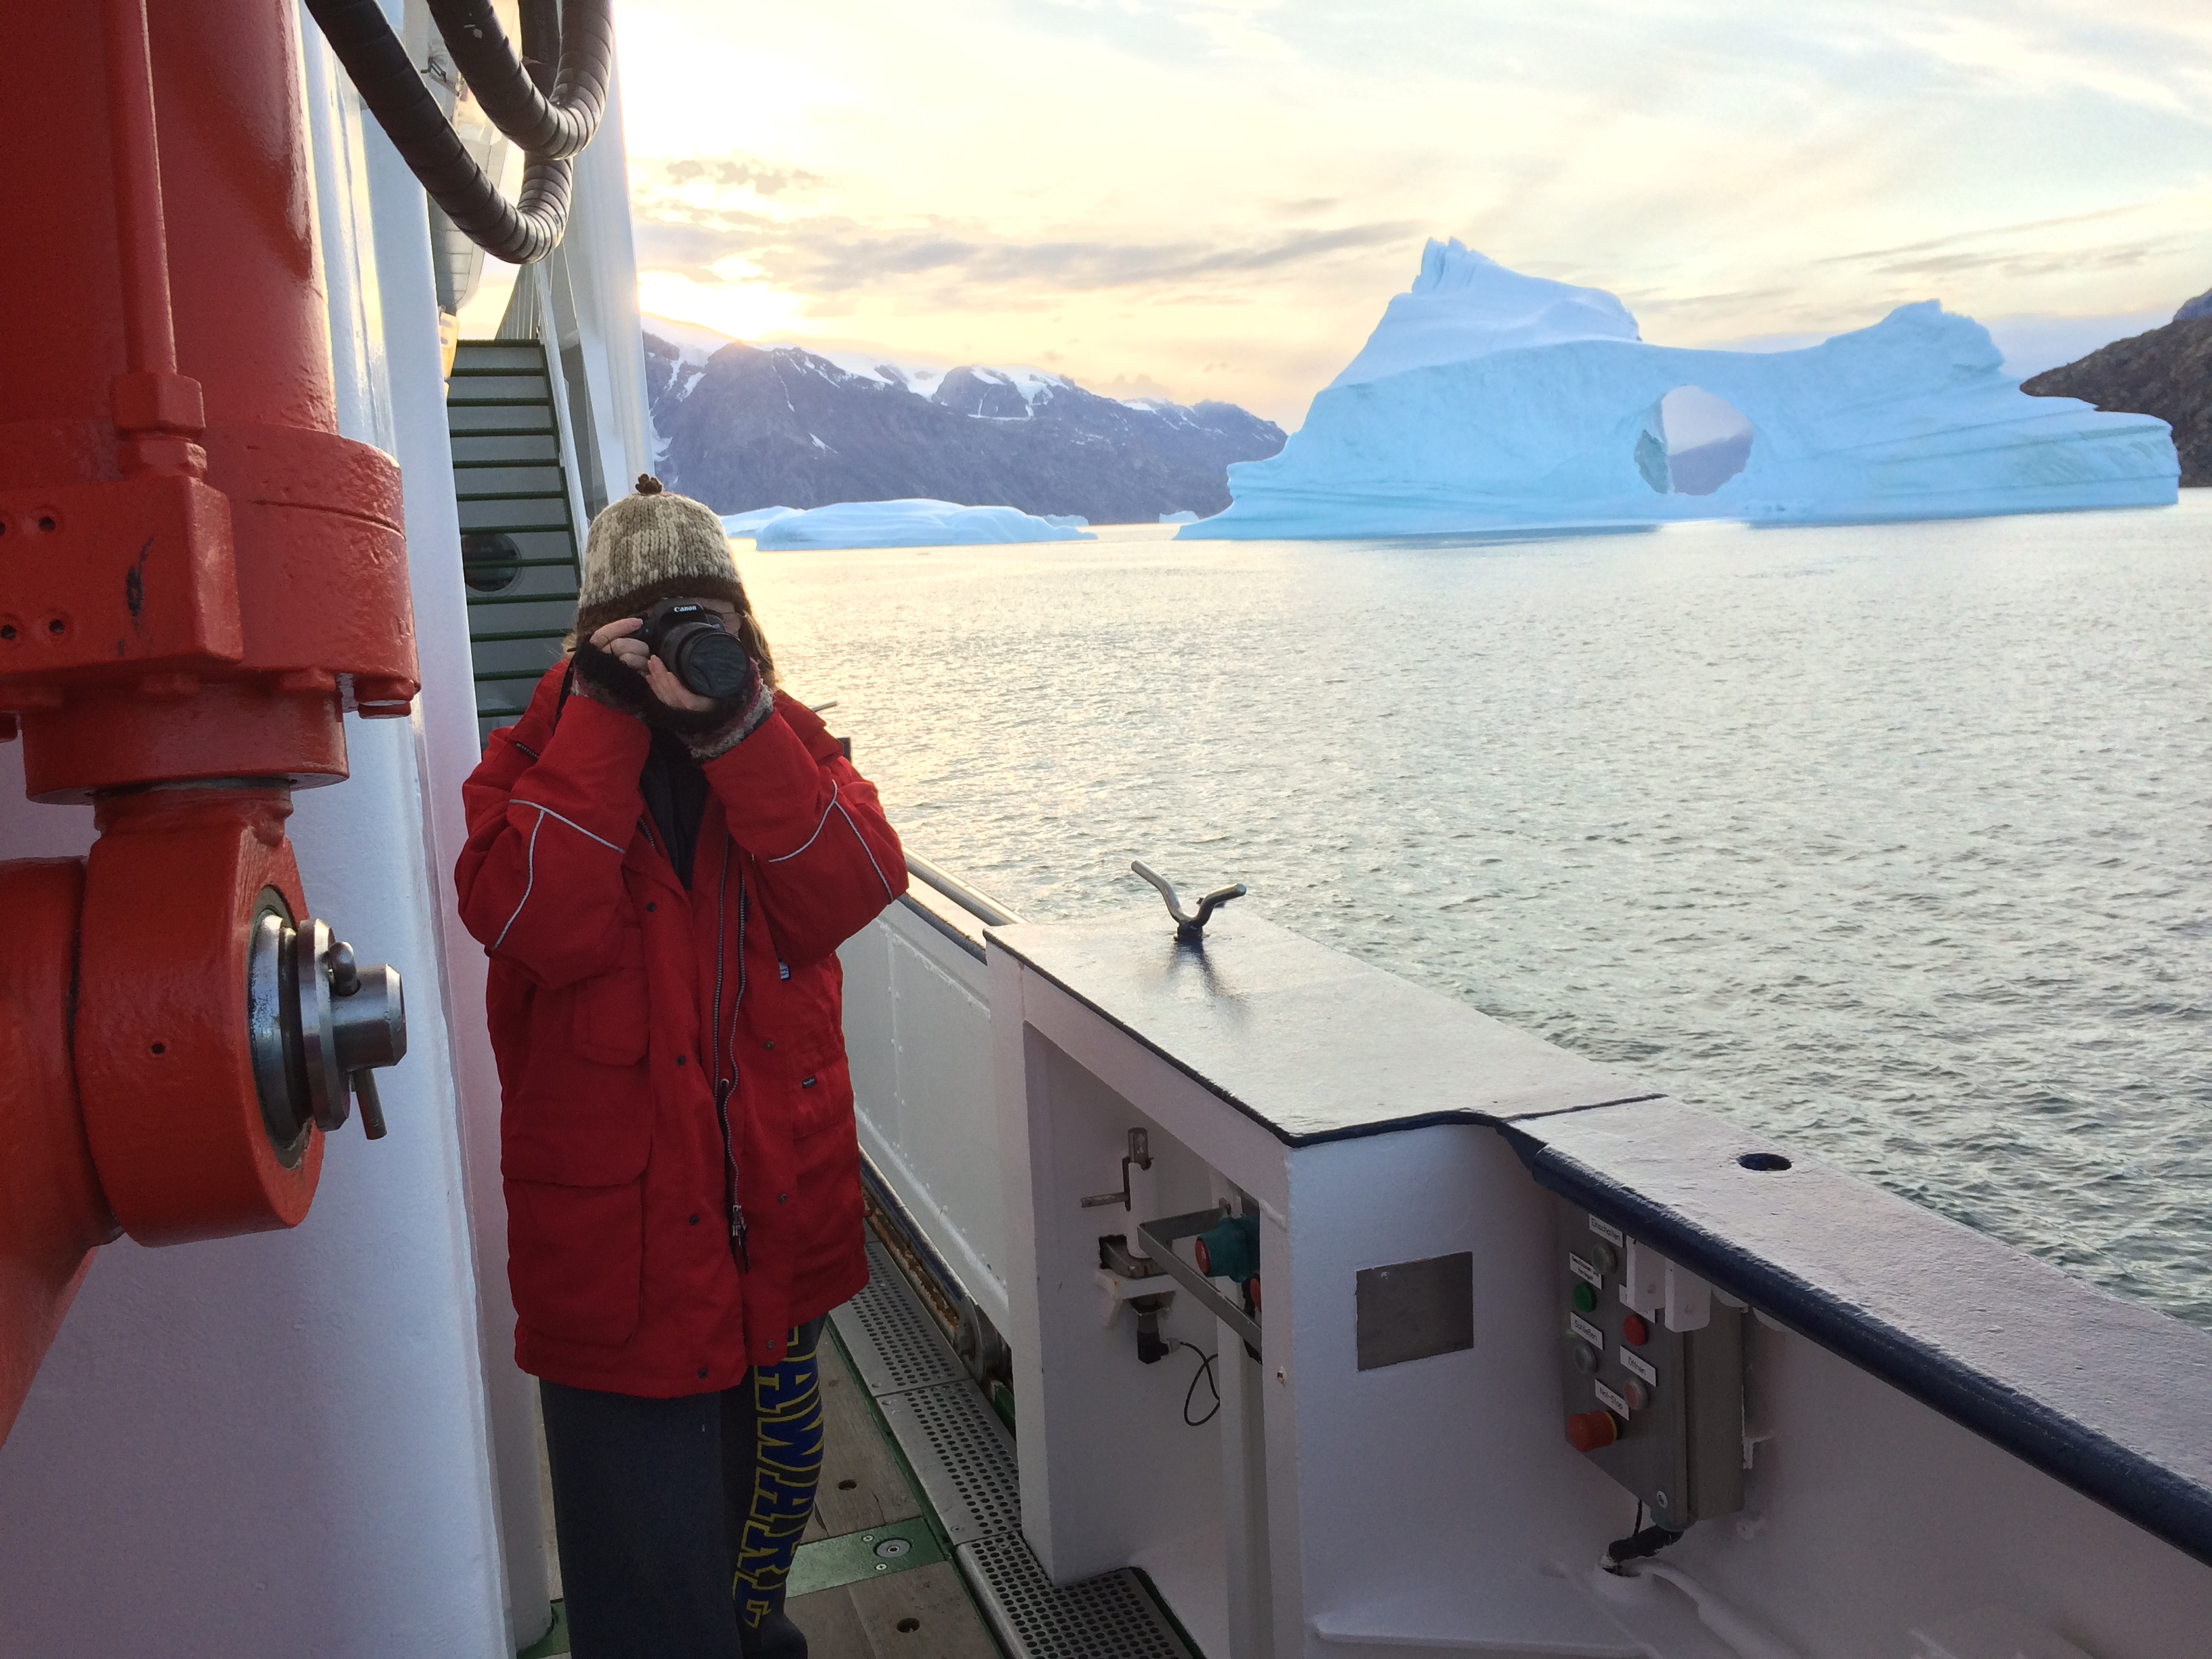 August 21, 8:38pm, Scoresby Sound Greenland. Portait of the author aboard the FS Maria S. Merian by Dr. Andreas Muenchow